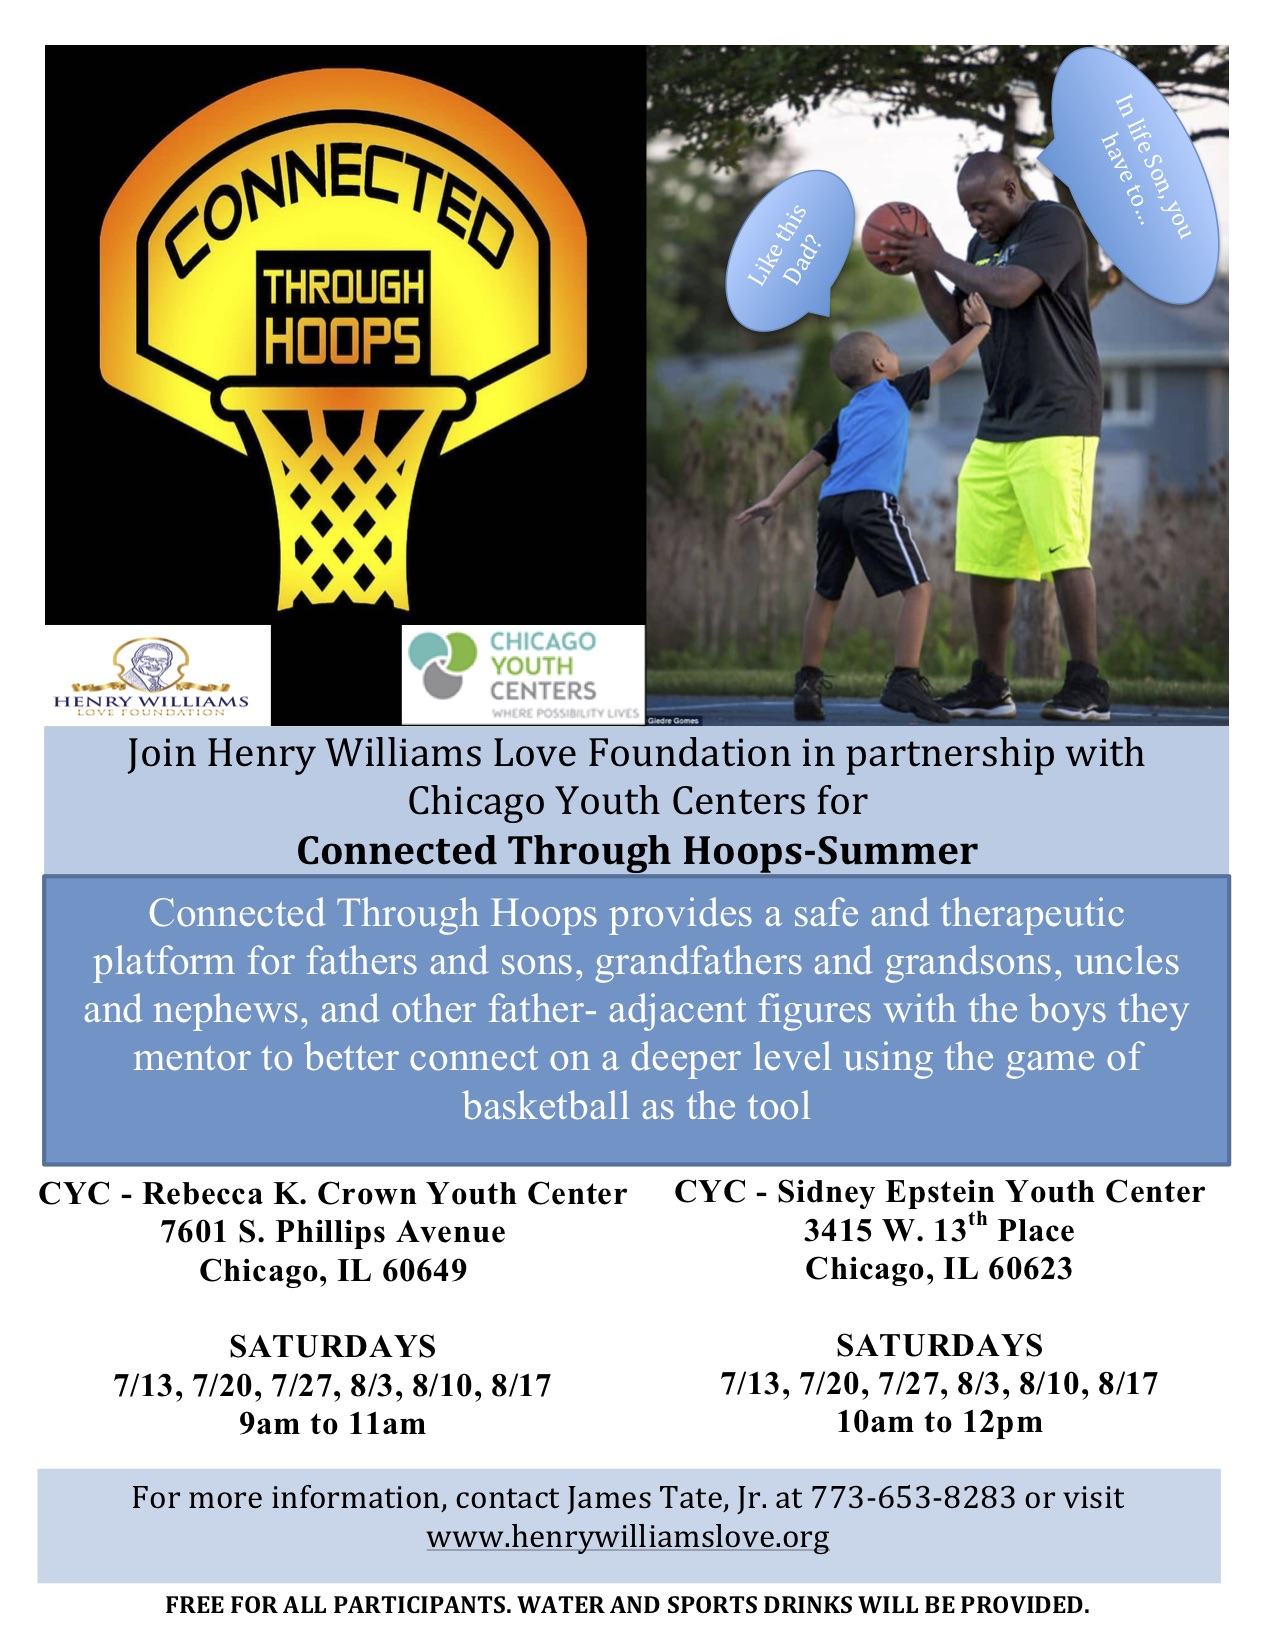 Connected Through Hoops-Summer – Henry Williams Love Foundation